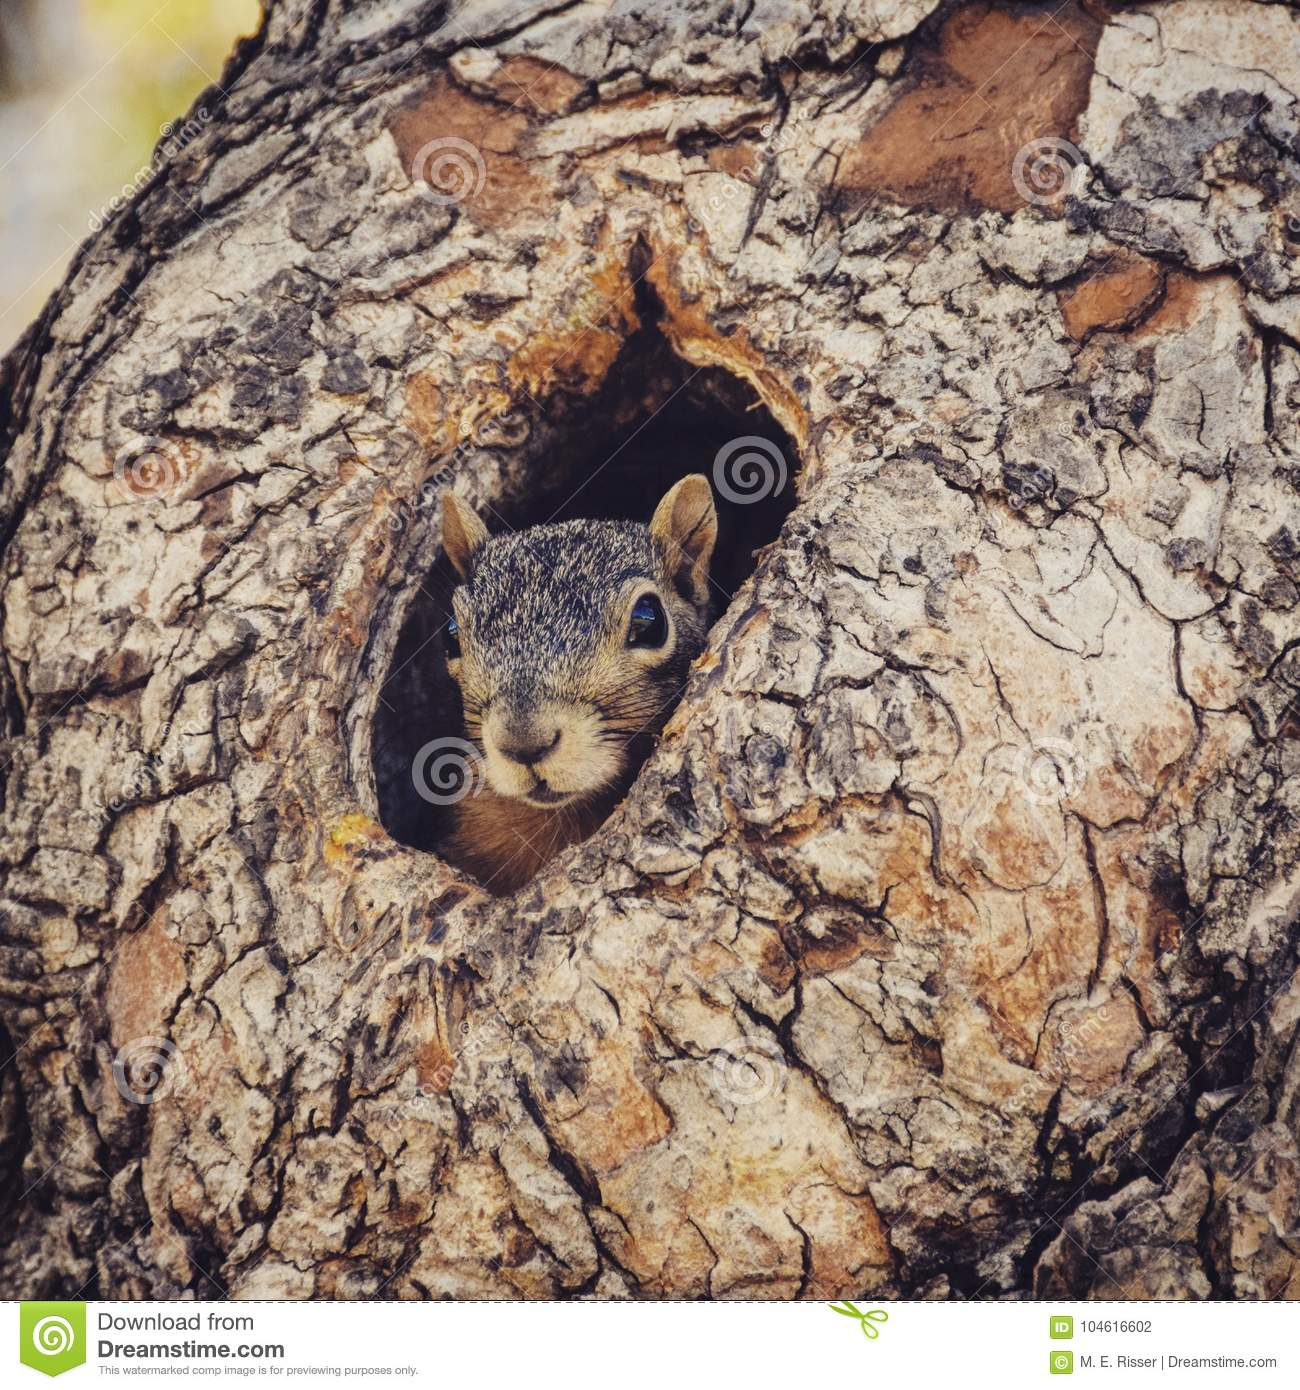 Squirrel Peeking out of a Tree Hole.